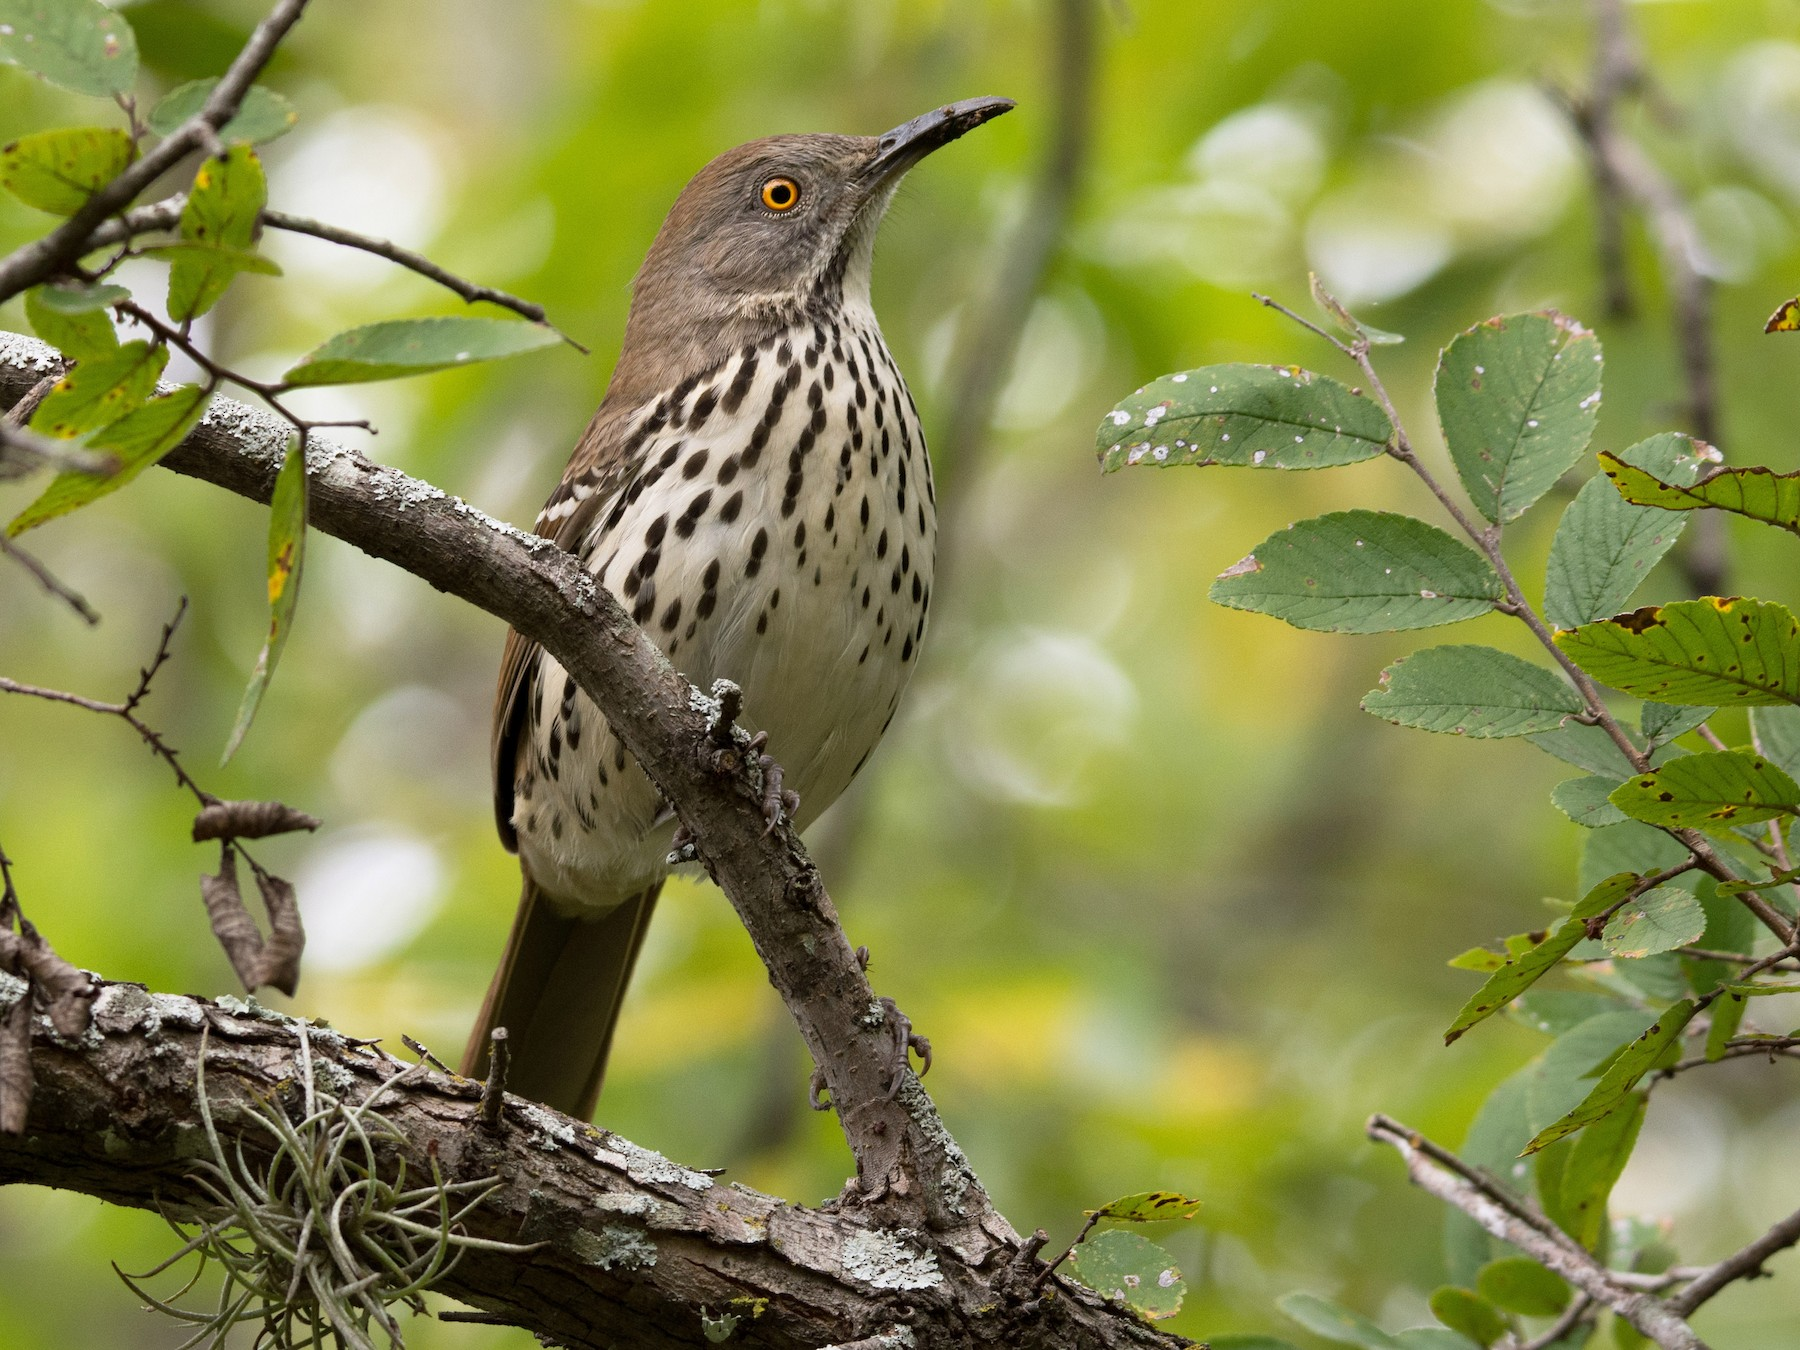 Long-billed Thrasher - Frank Lehman